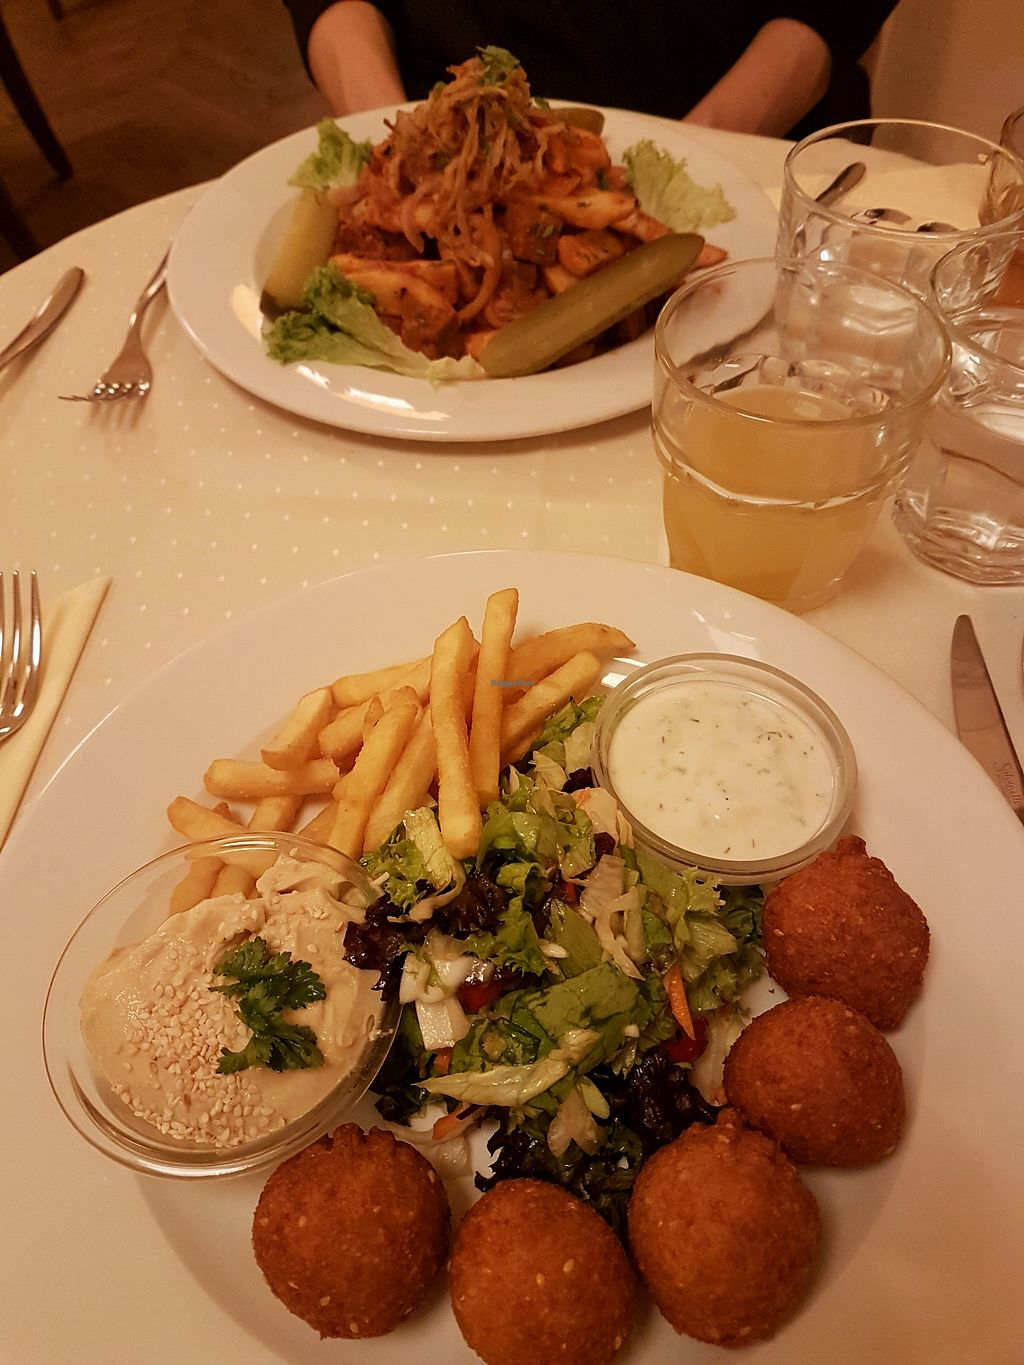 """Photo of Napfenyes Restaurant and Pastry Shop  by <a href=""""/members/profile/LauraBanana"""">LauraBanana</a> <br/>falafel and chips. steak and chips <br/> April 28, 2018  - <a href='/contact/abuse/image/18107/392055'>Report</a>"""